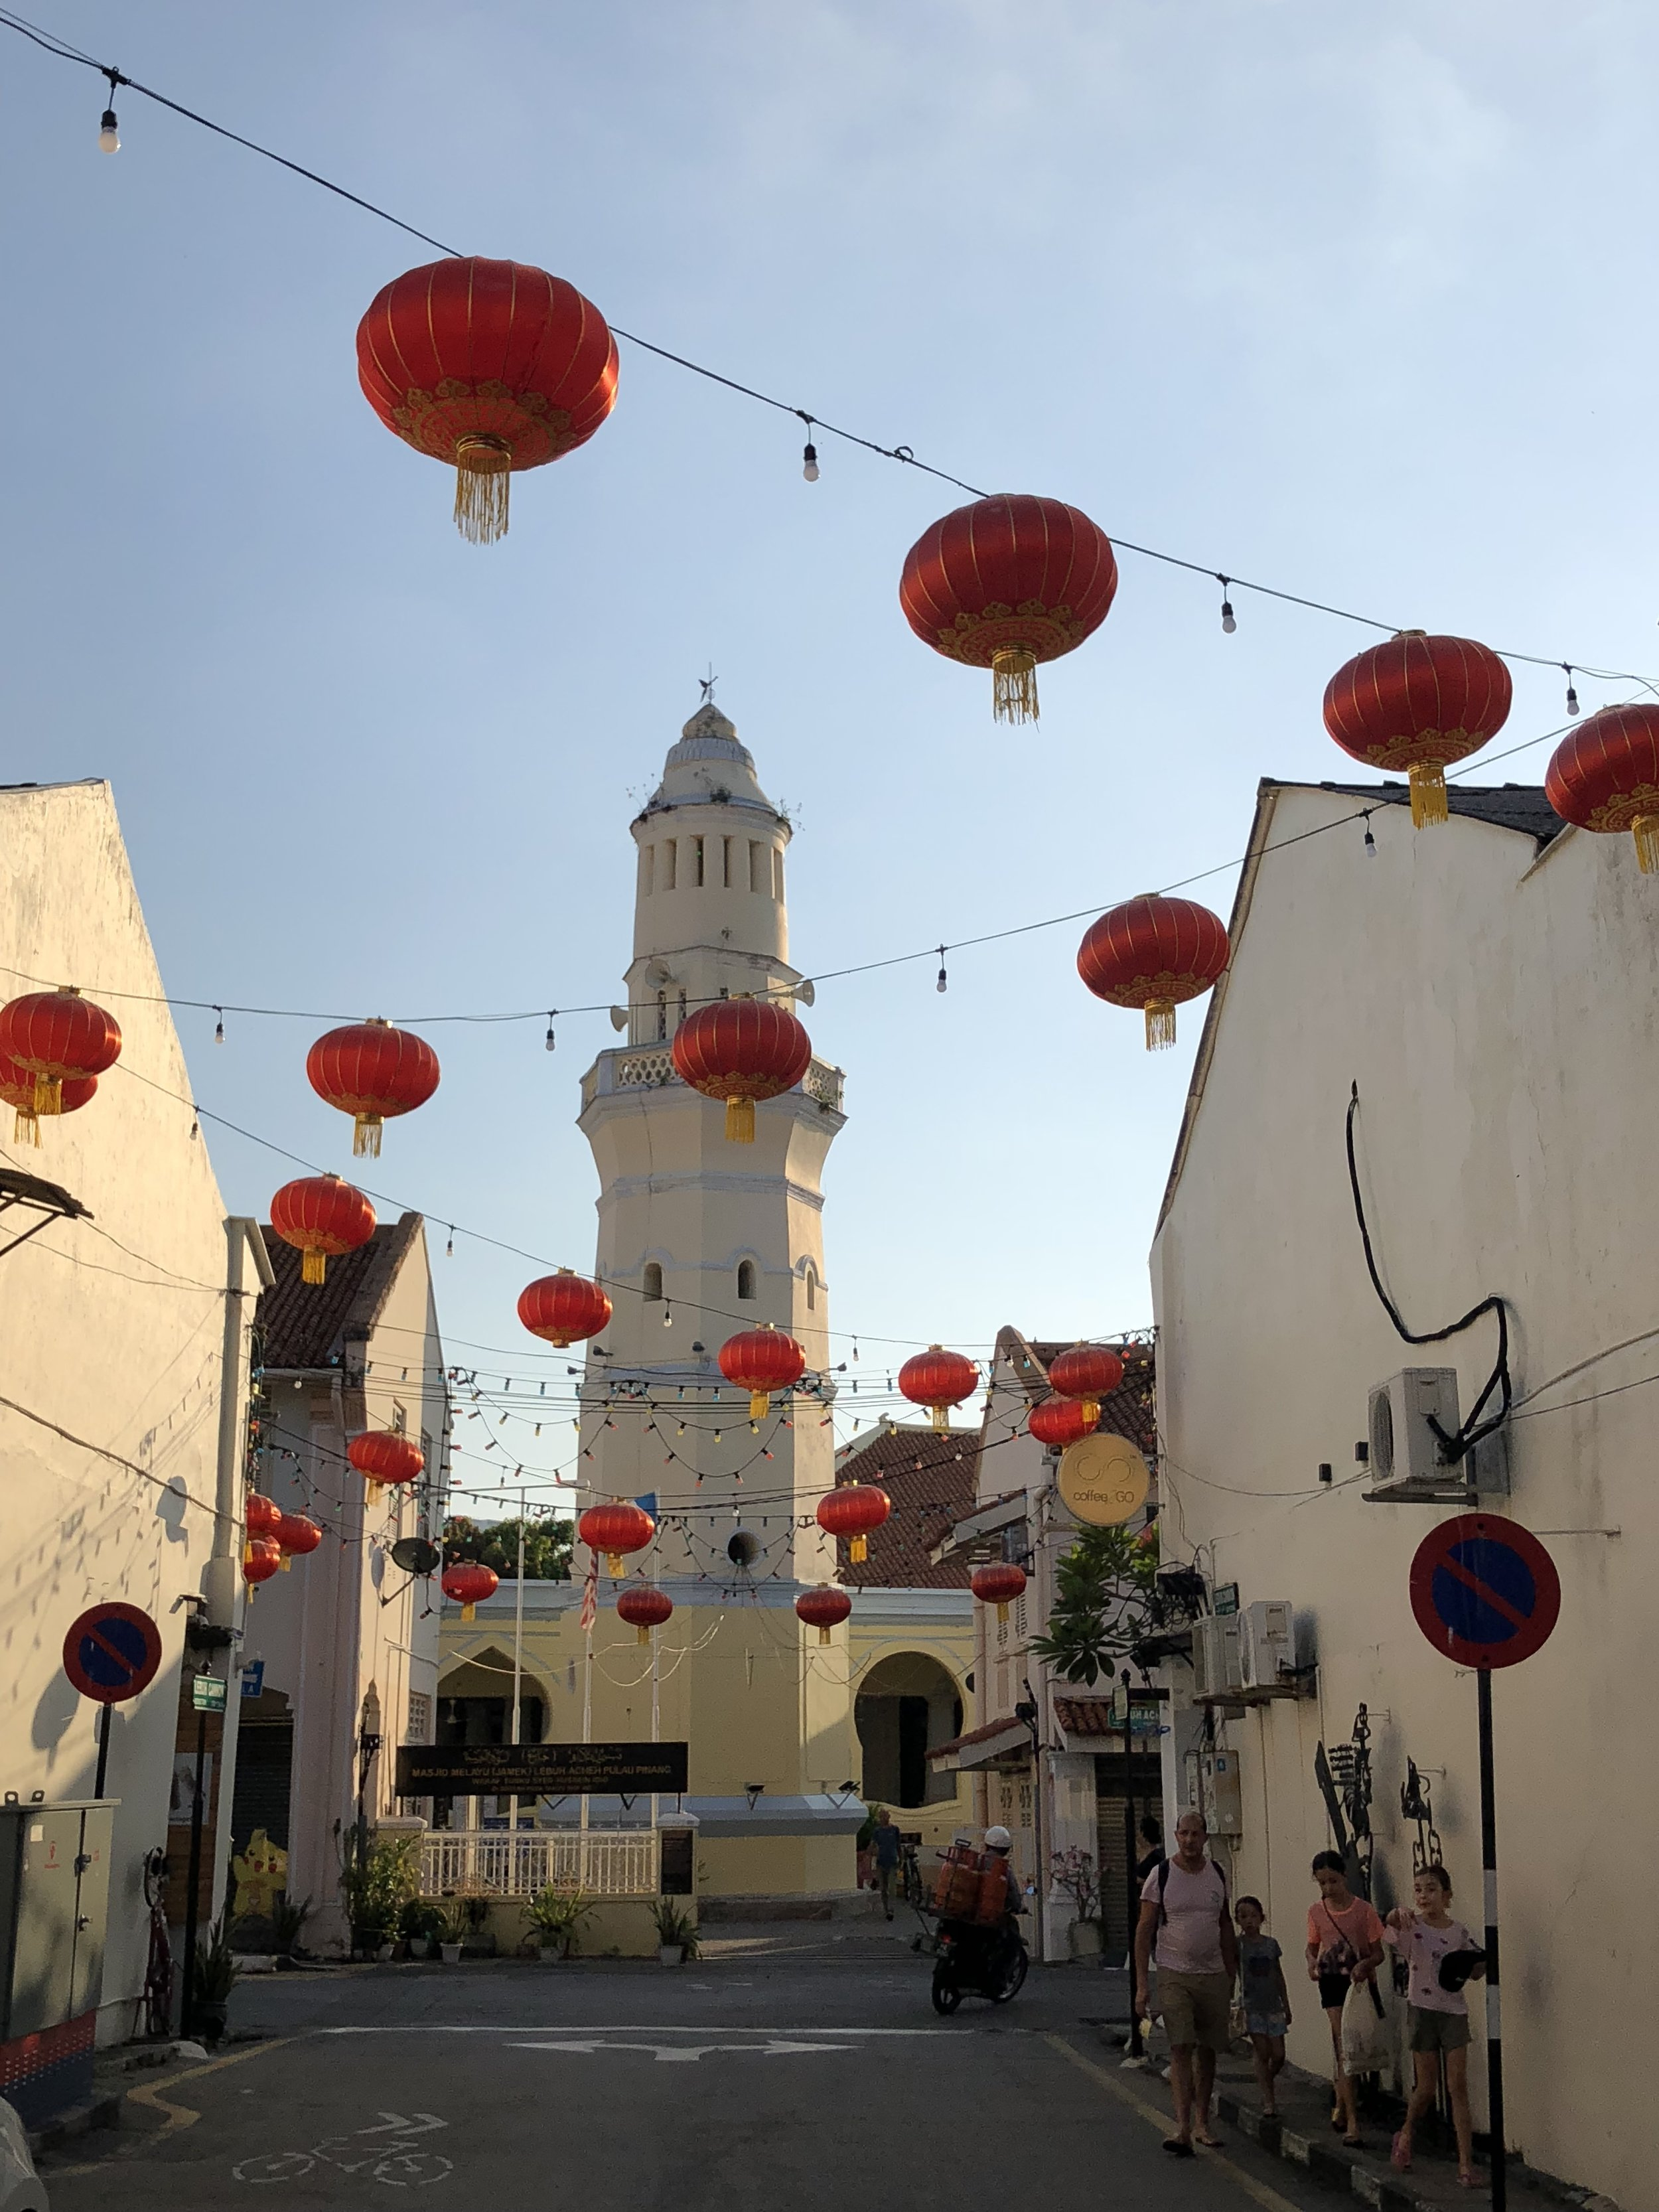 Once last look at an artsy street in Penang!